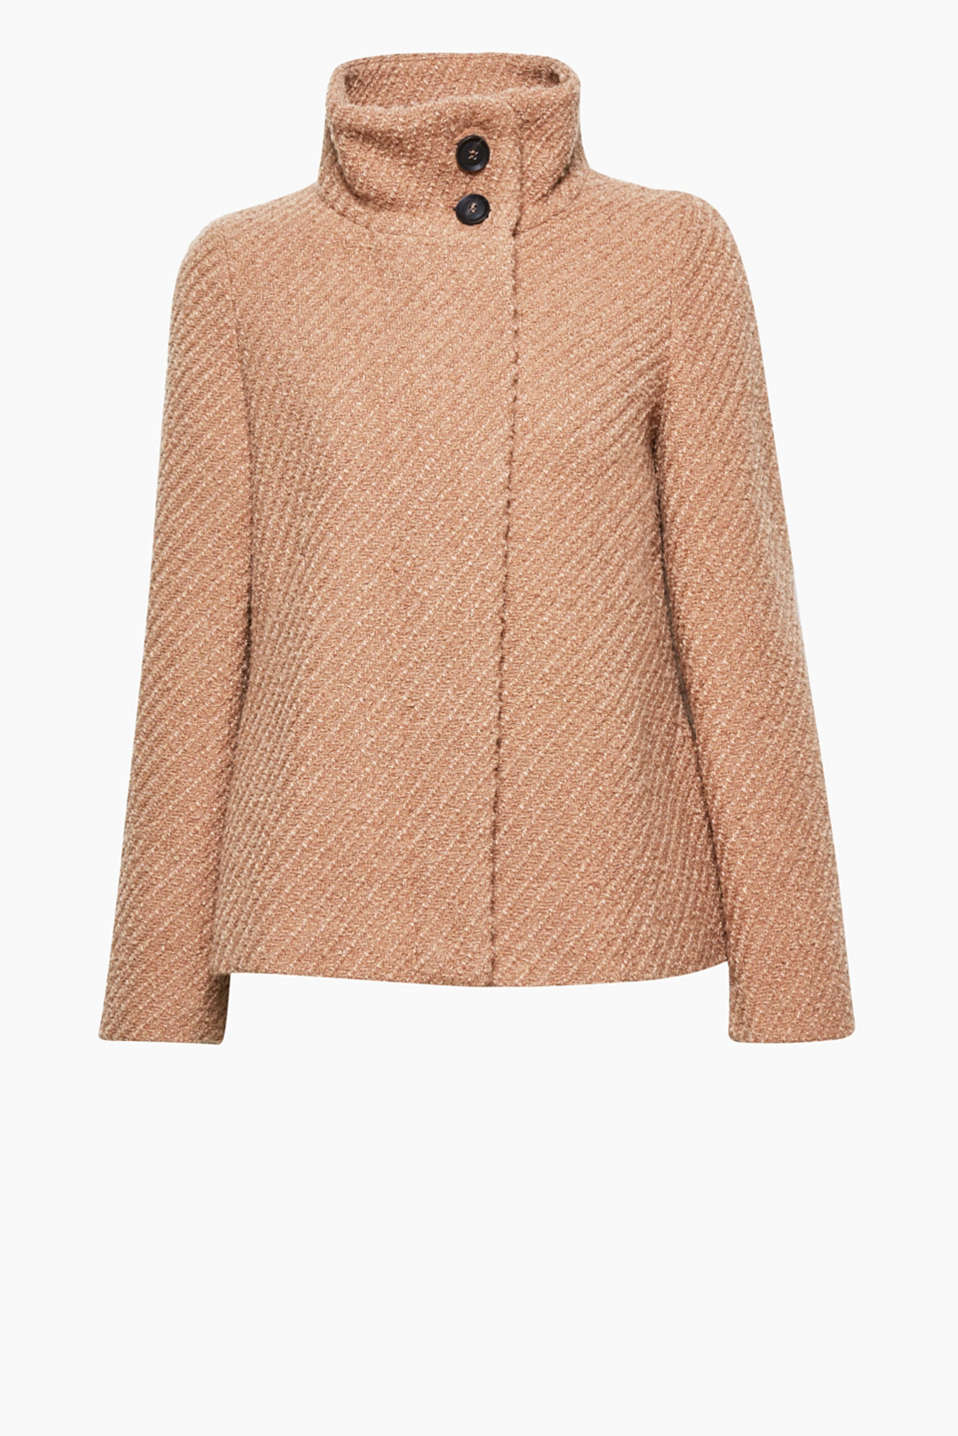 The fashionable A-line cut sets off this bouclé jacket with a diagonal texture and high stand-up collar to perfection!